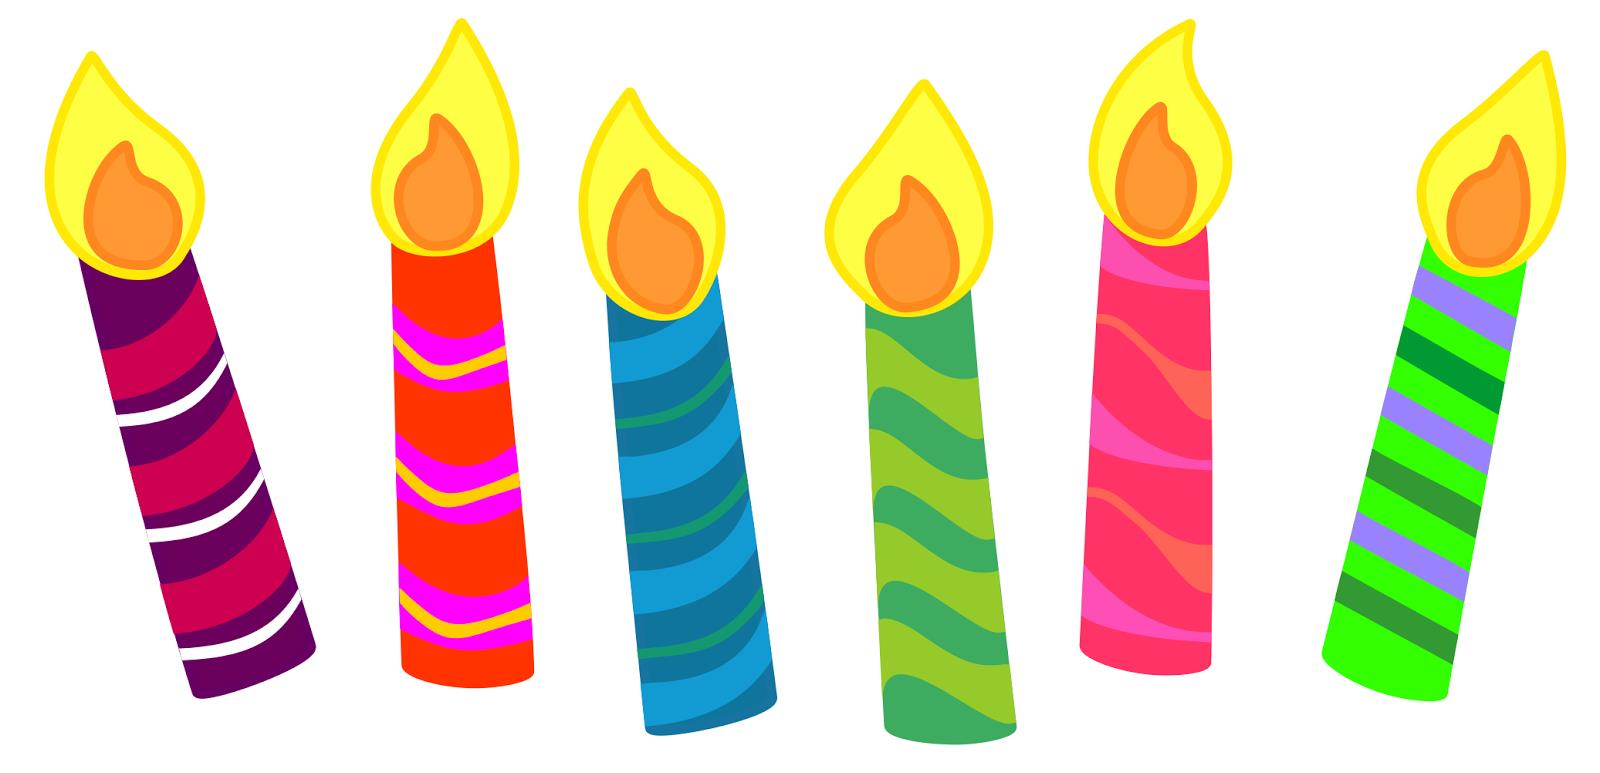 birthday cake with candles clipart ; treasures-birthday-cake-clipart